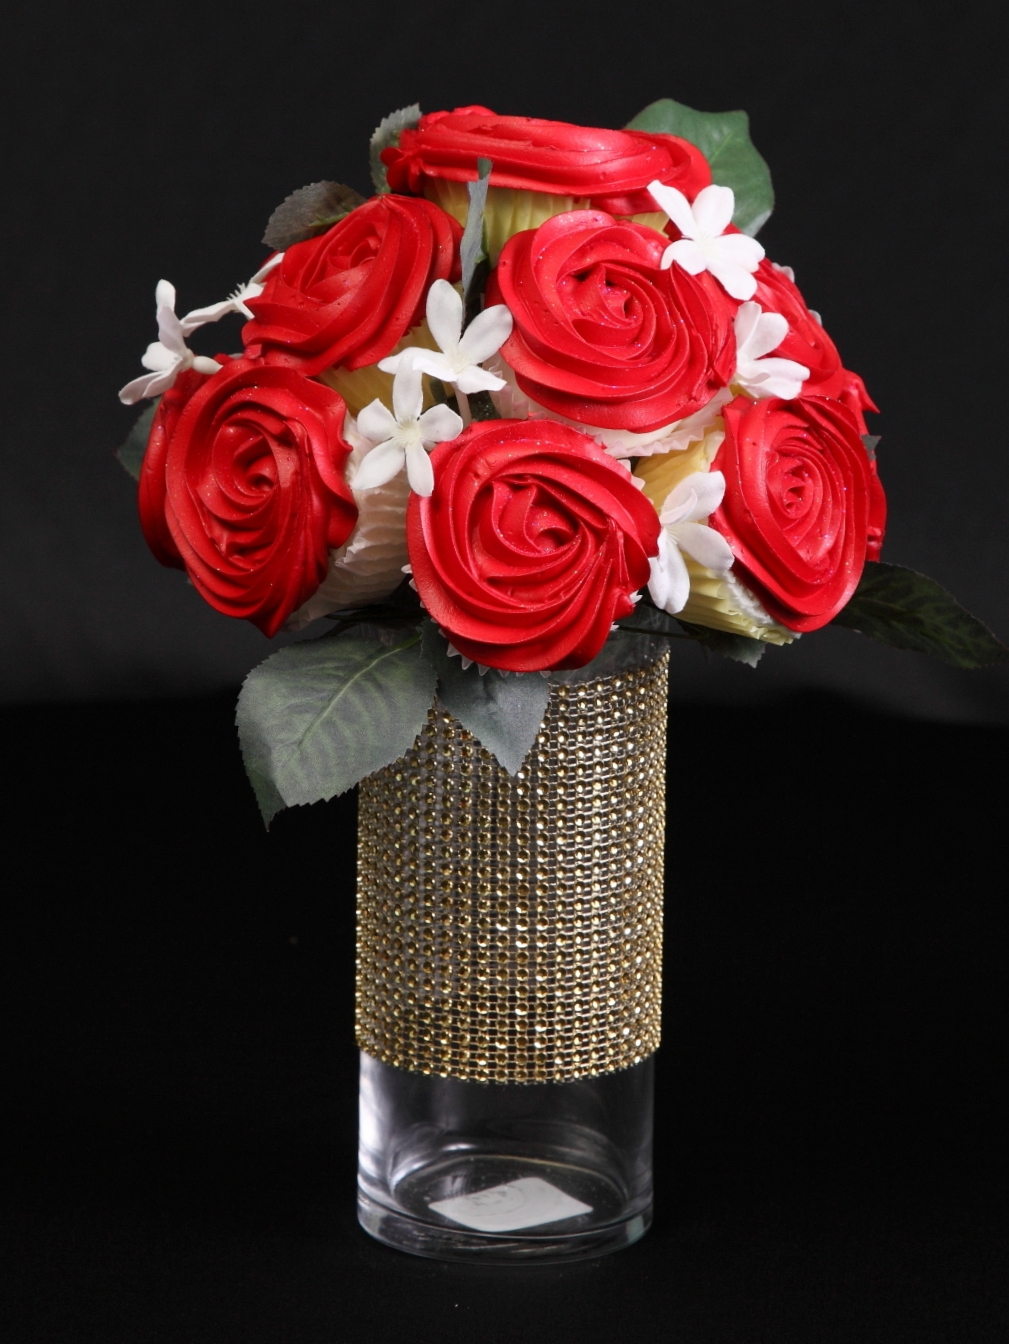 12 ct red rose tube vase.JPG